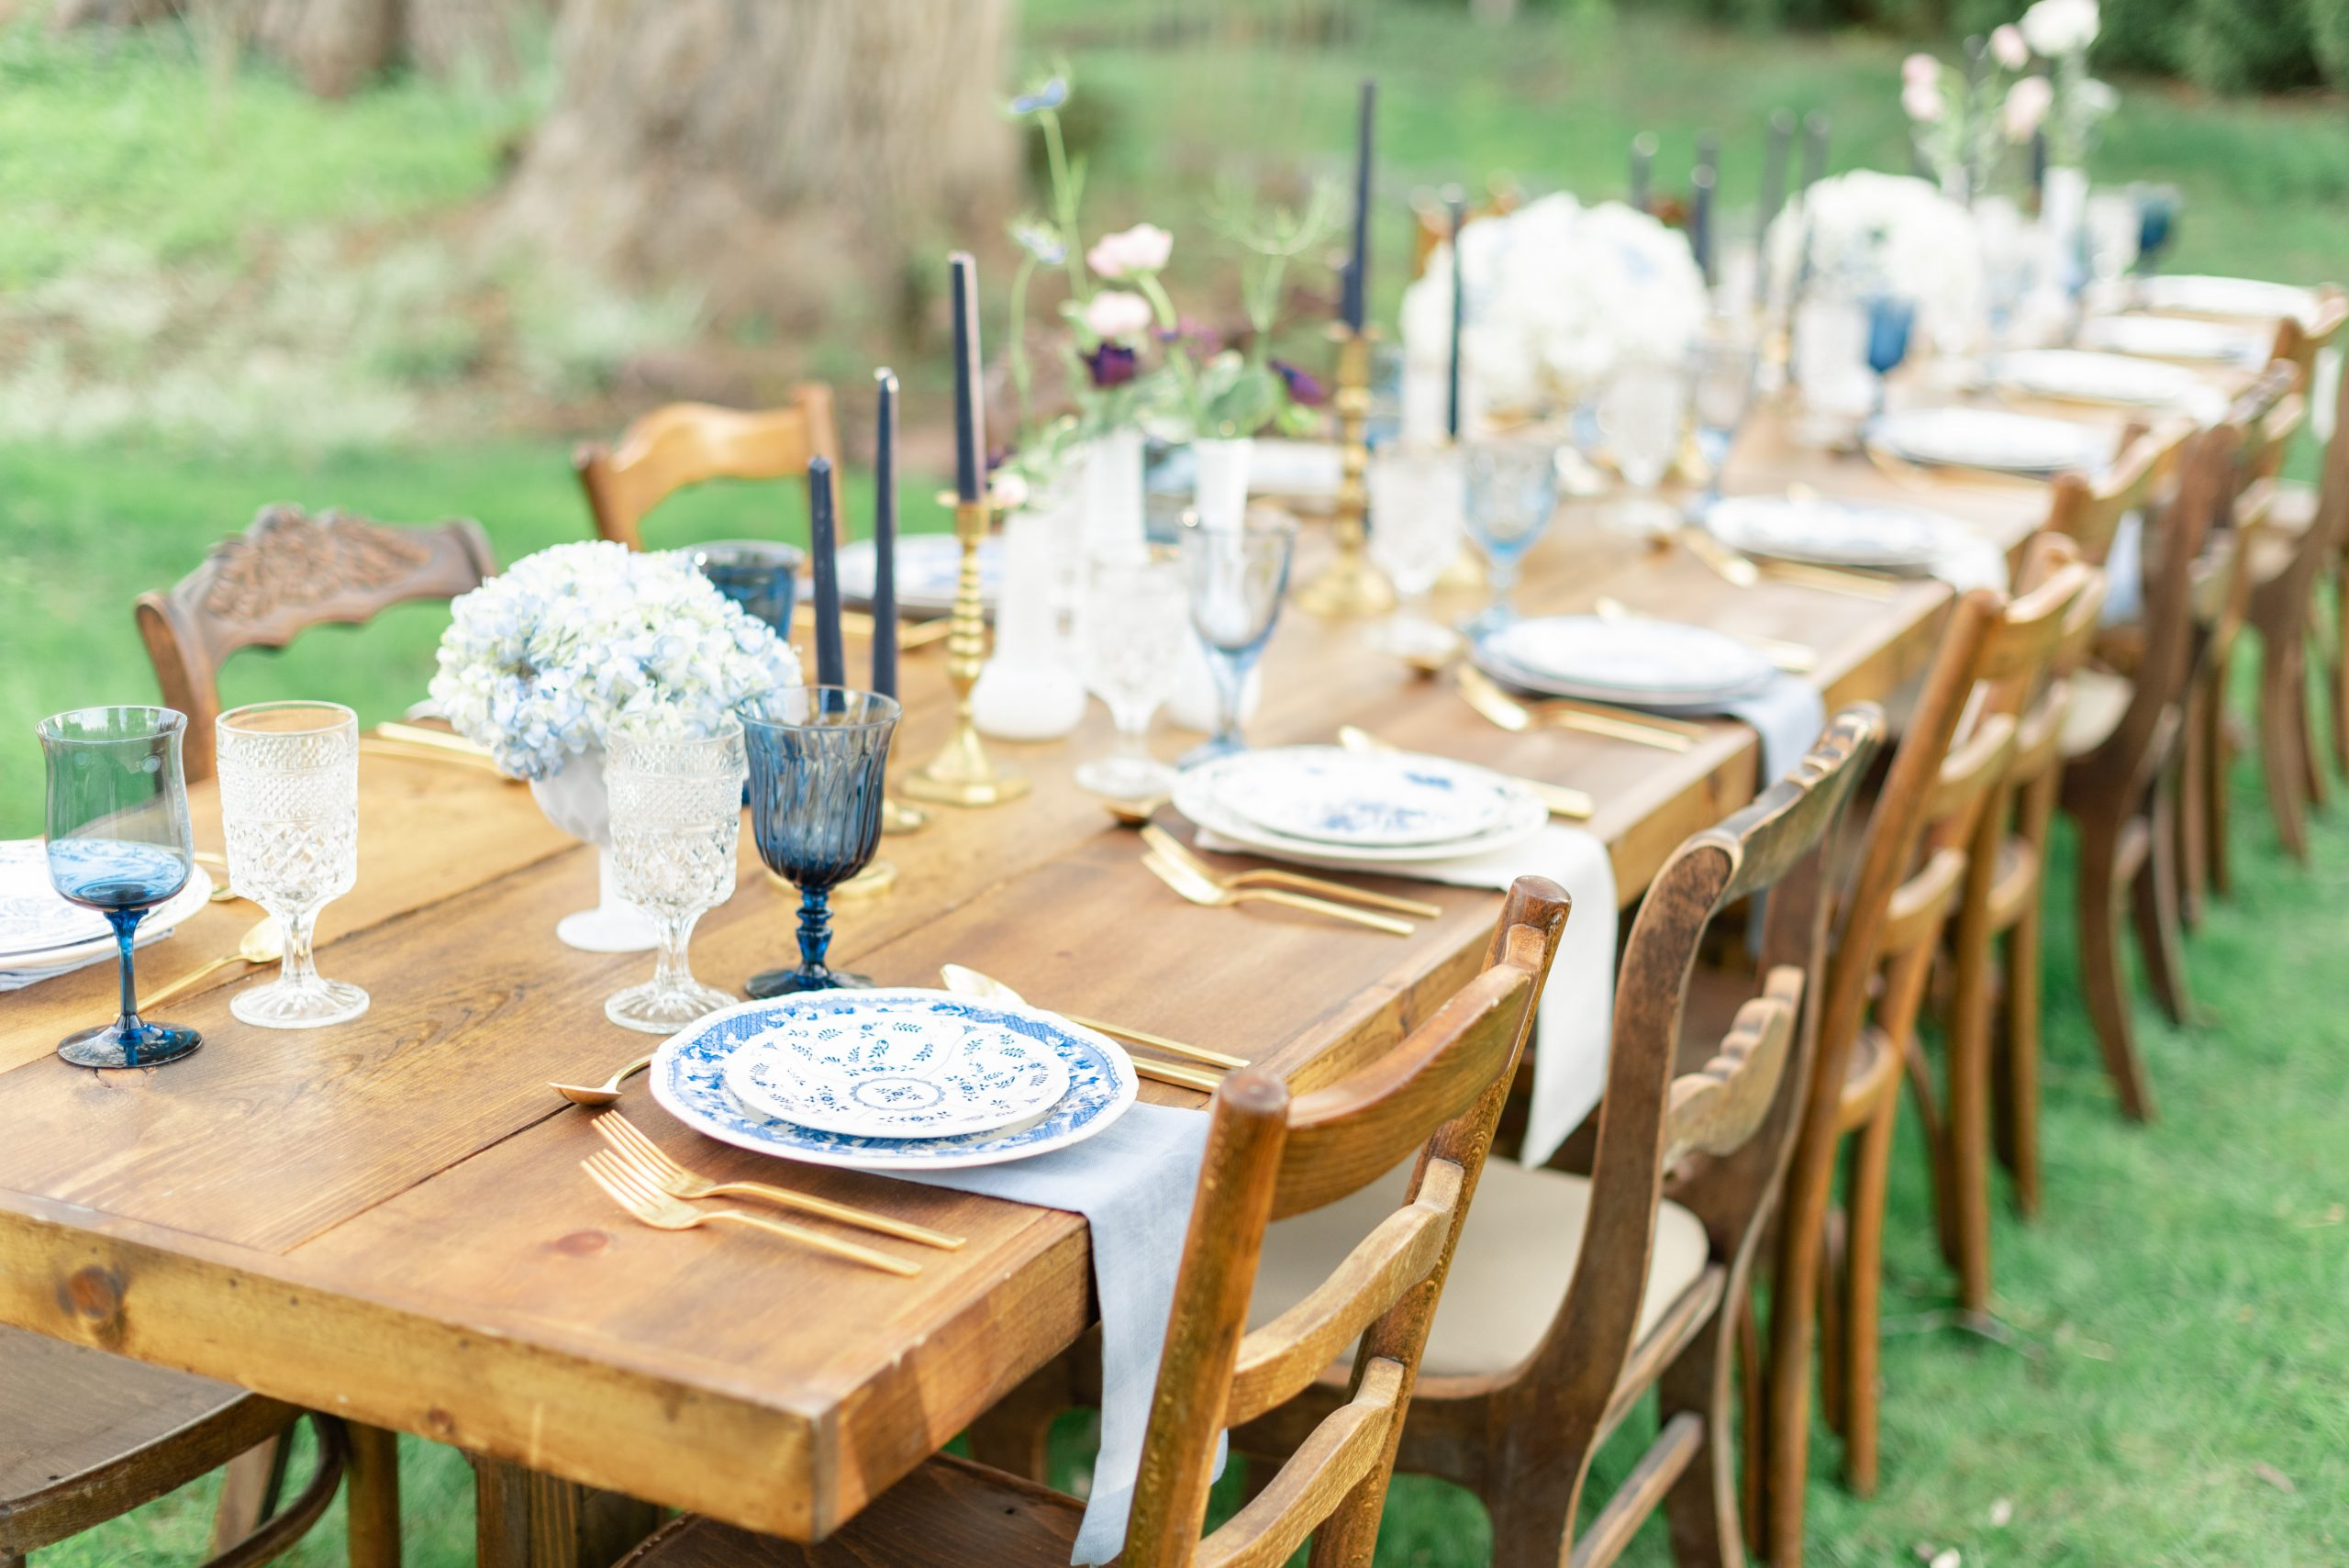 Our collection of mismatched blue glassware and blue and white china is paired with linen napkins of the same tones.